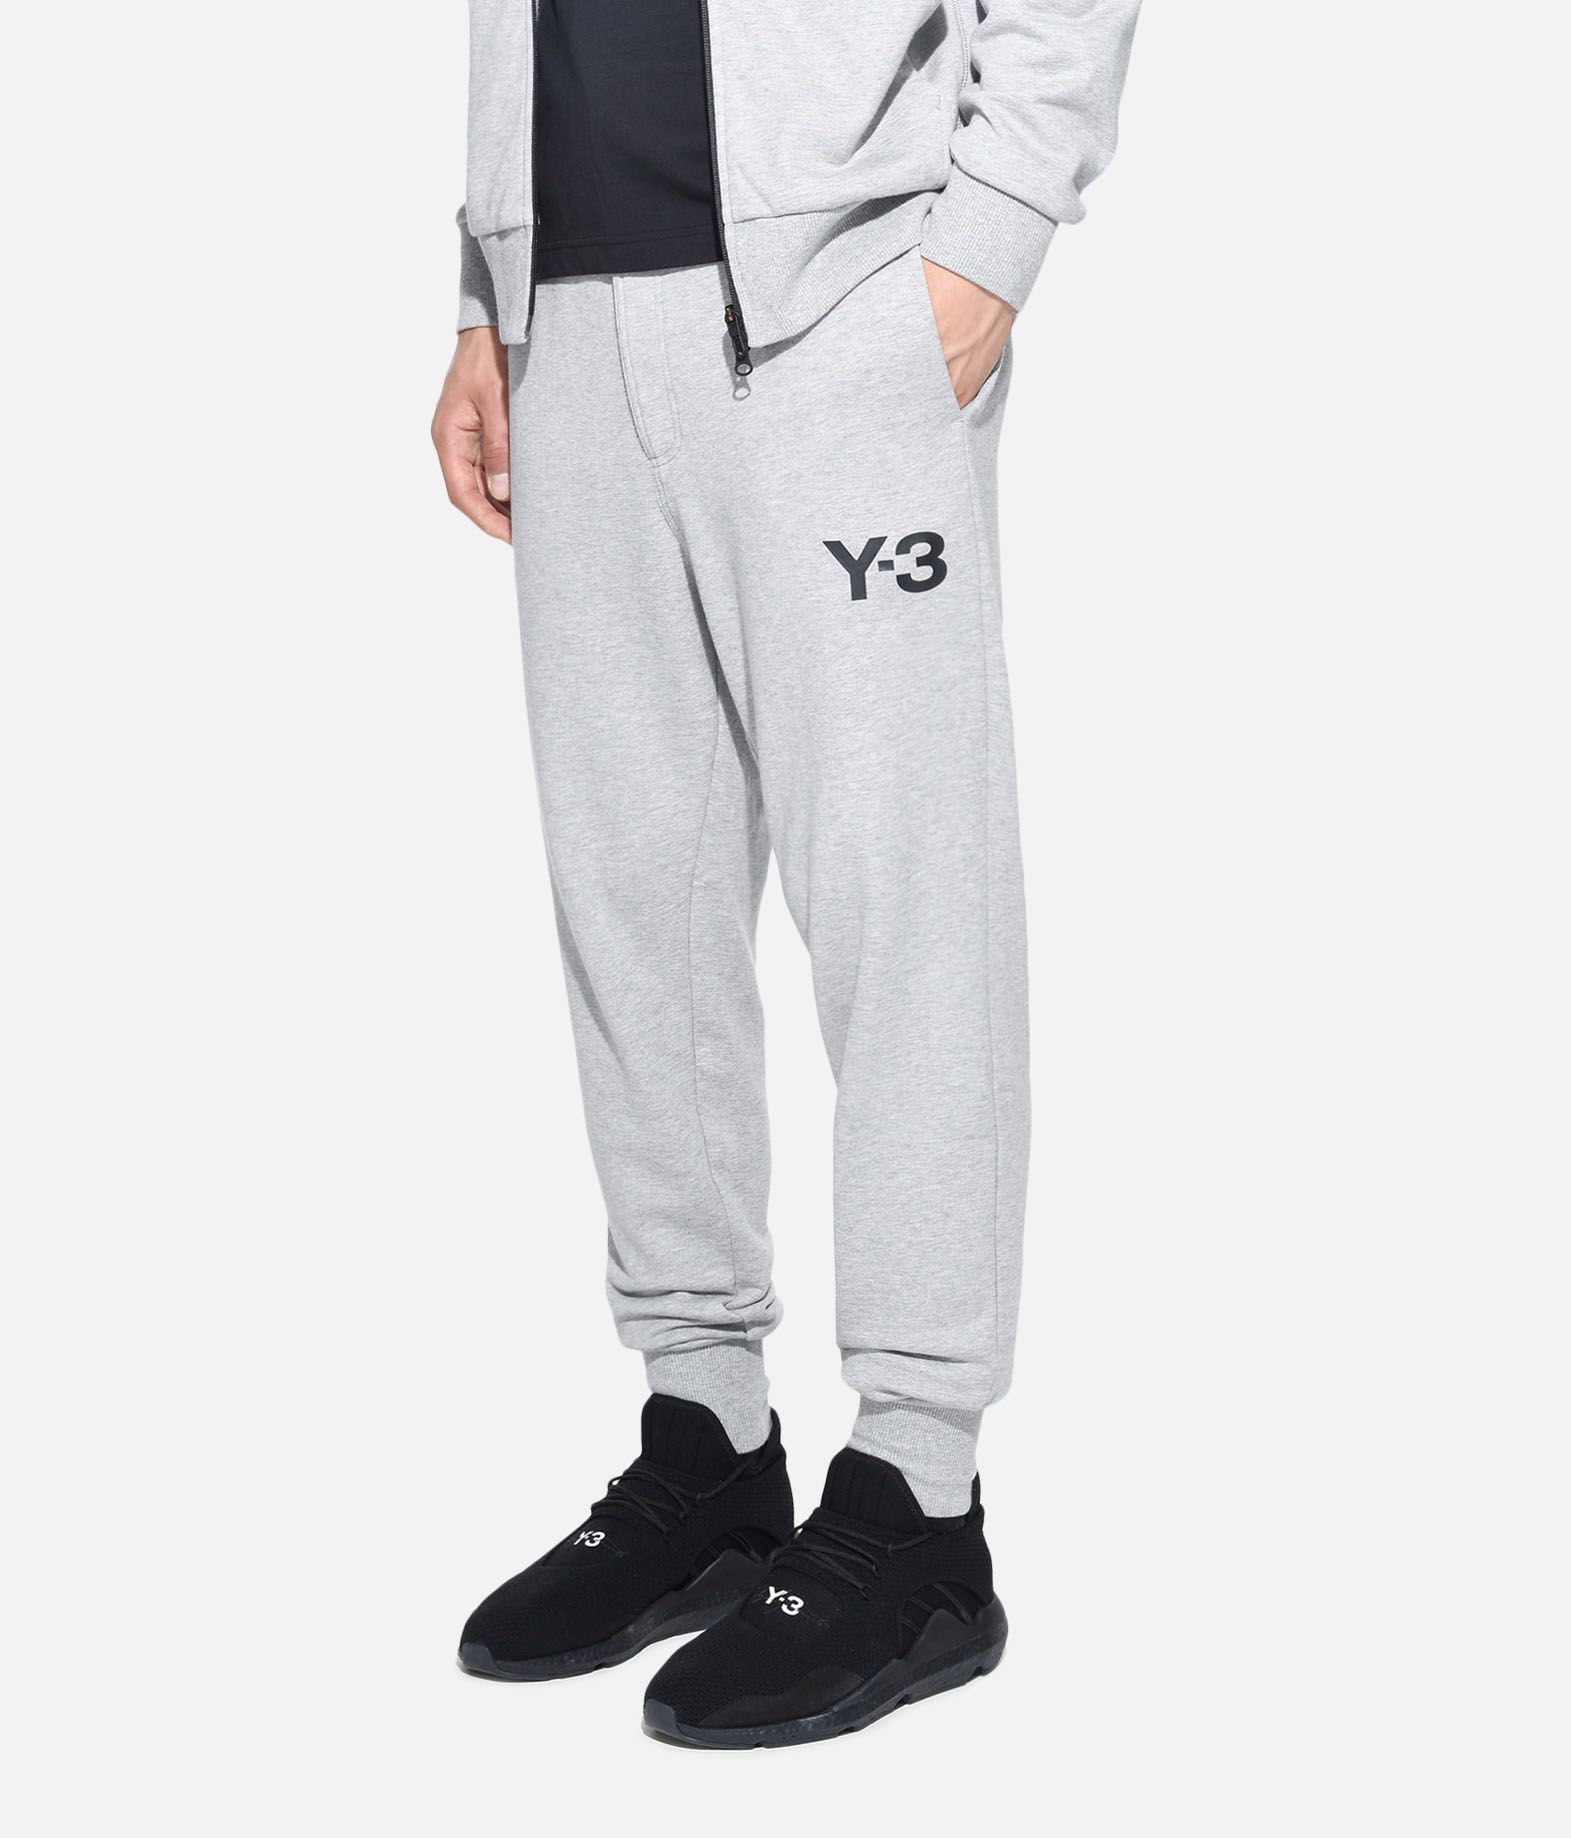 Y-3 Y-3 Classic Pants Sweatpants Man e